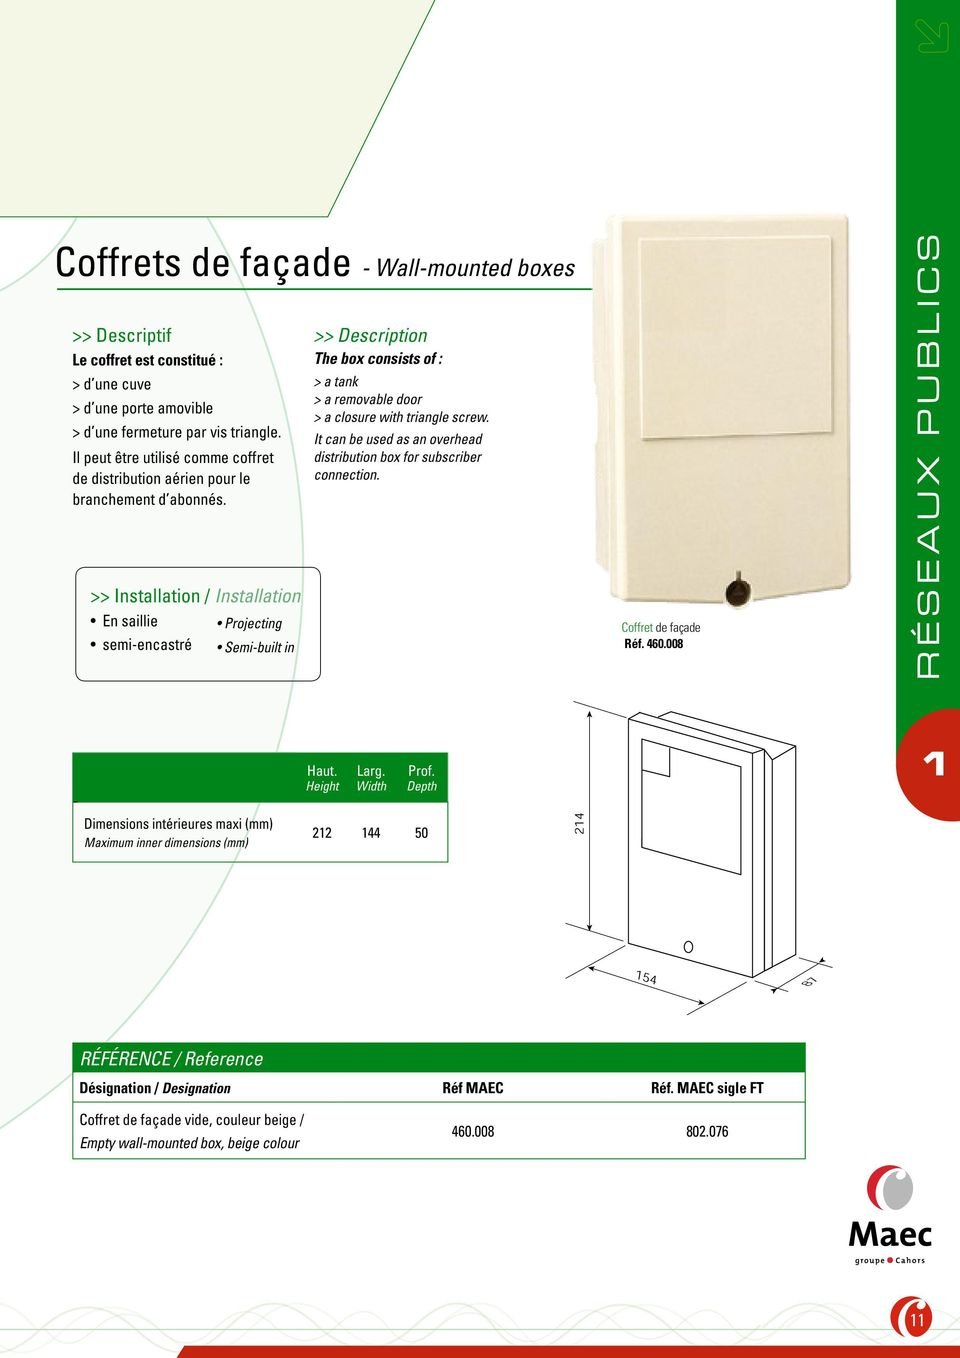 >> Installation / Installation En saillie semi-encastré Projecting Semi-built in >> Description The box consists of : > a tank > a removable door > a closure with triangle screw.